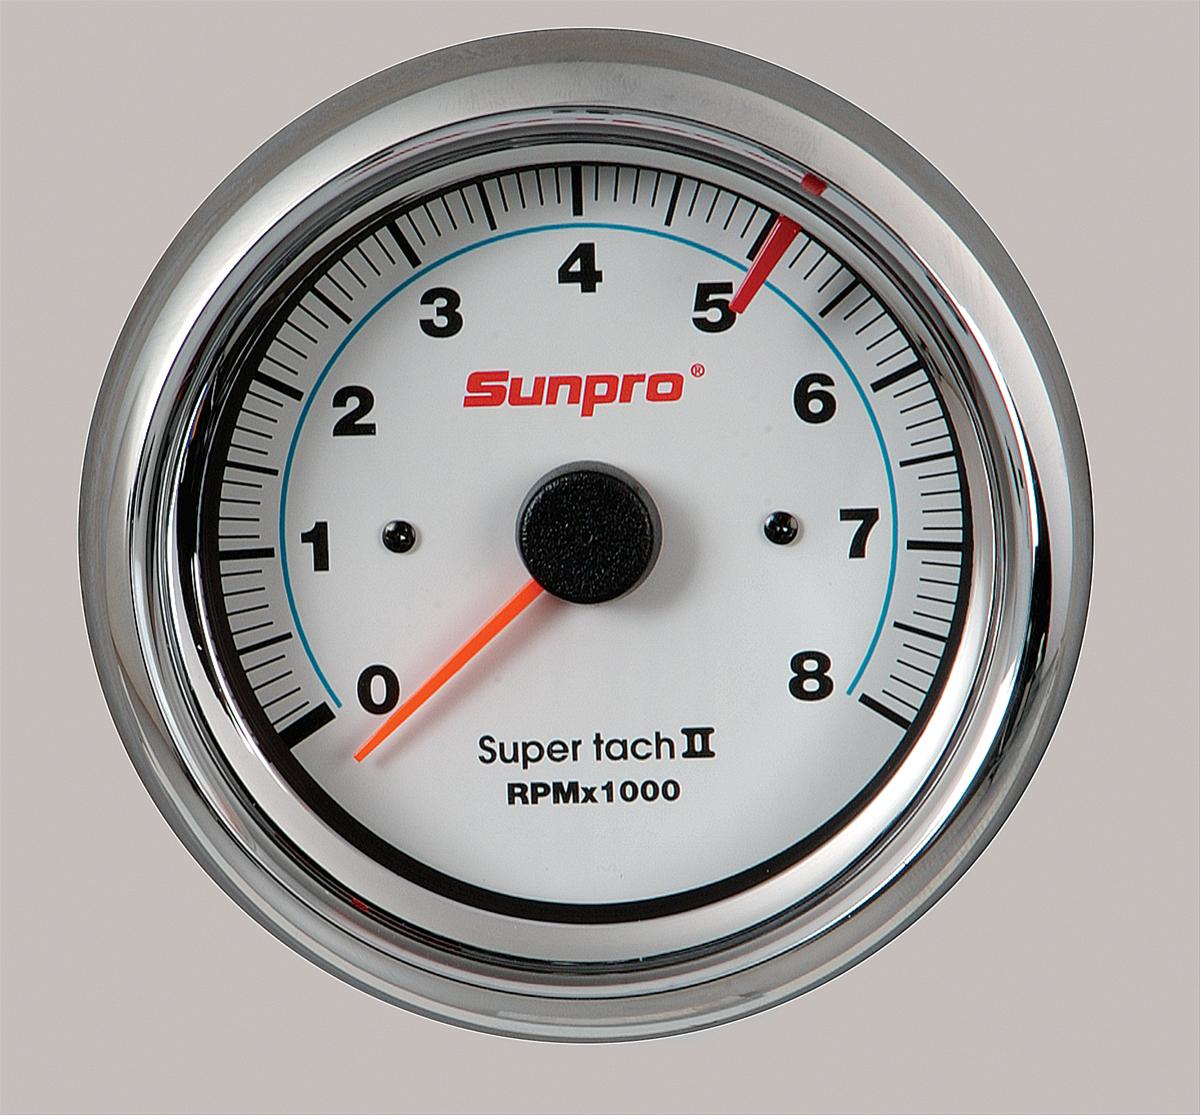 Sunpro Sun Super Tach II Tachometers CP7903 - Free Shipping on Orders Over  $49 at Summit Racing